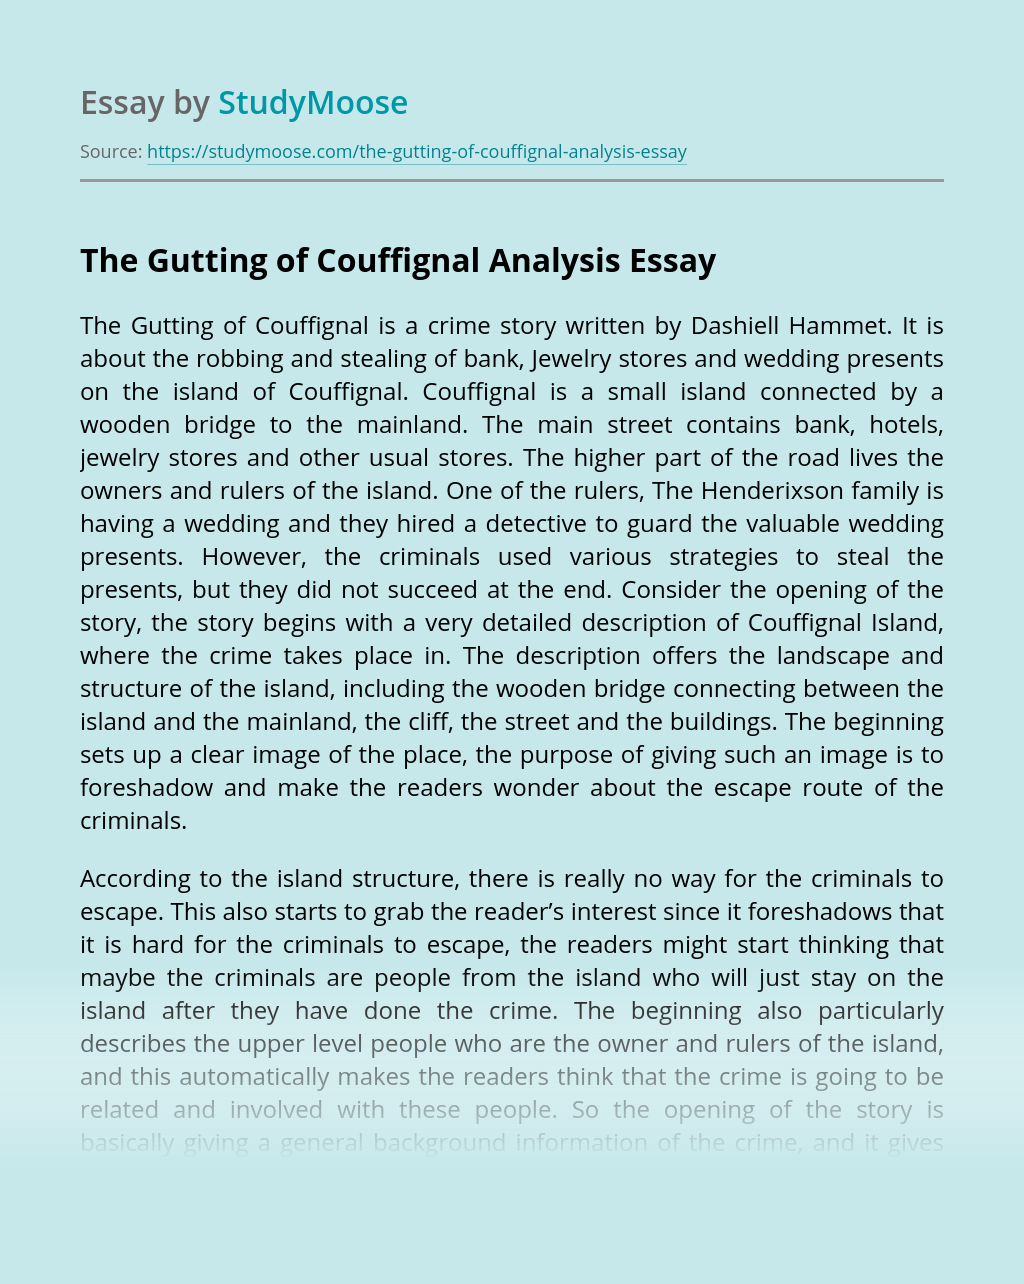 The Gutting of Couffignal Analysis